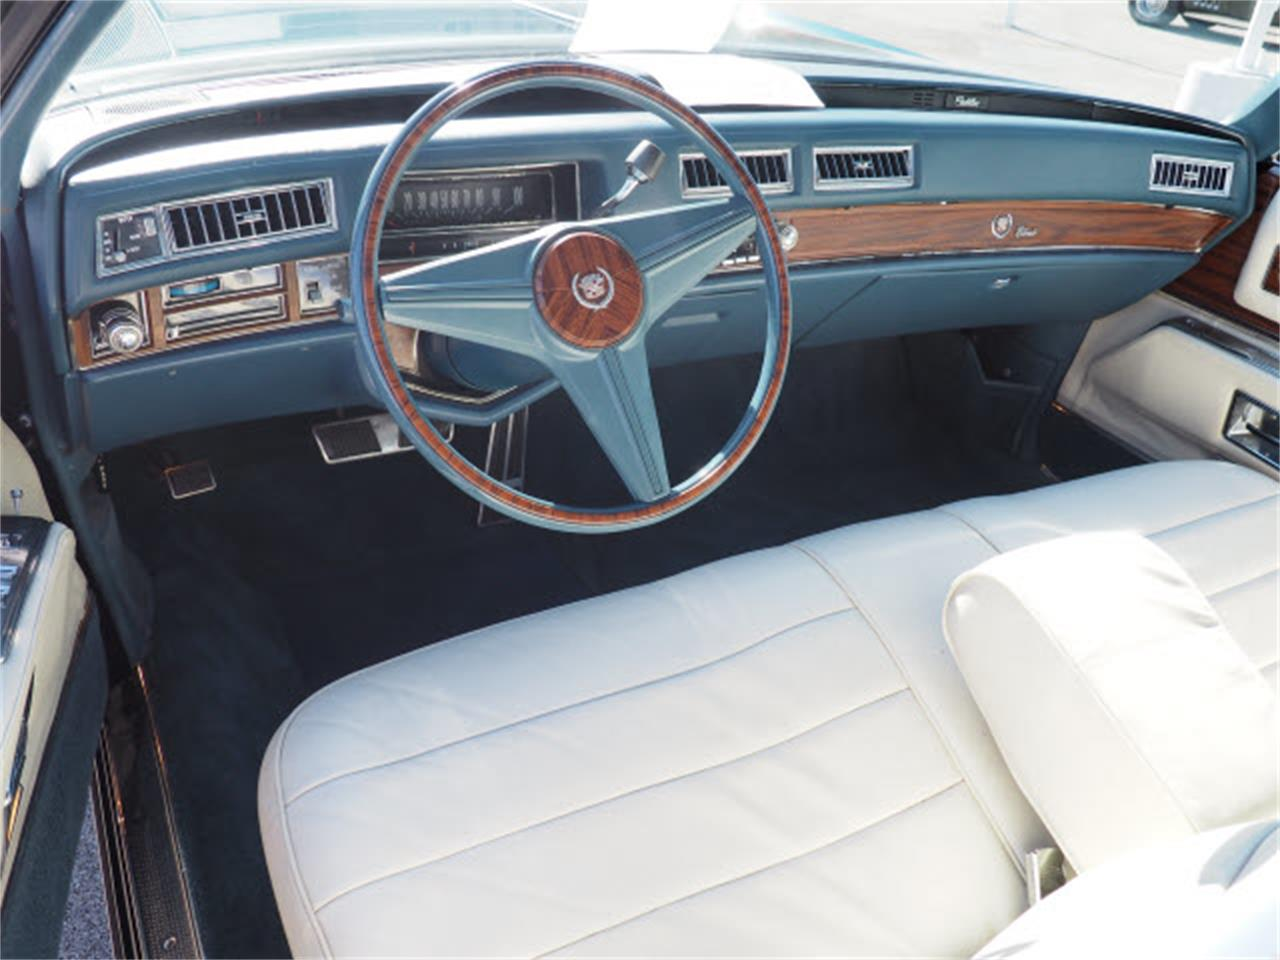 1976 Cadillac Eldorado for sale in Downers Grove, IL – photo 8